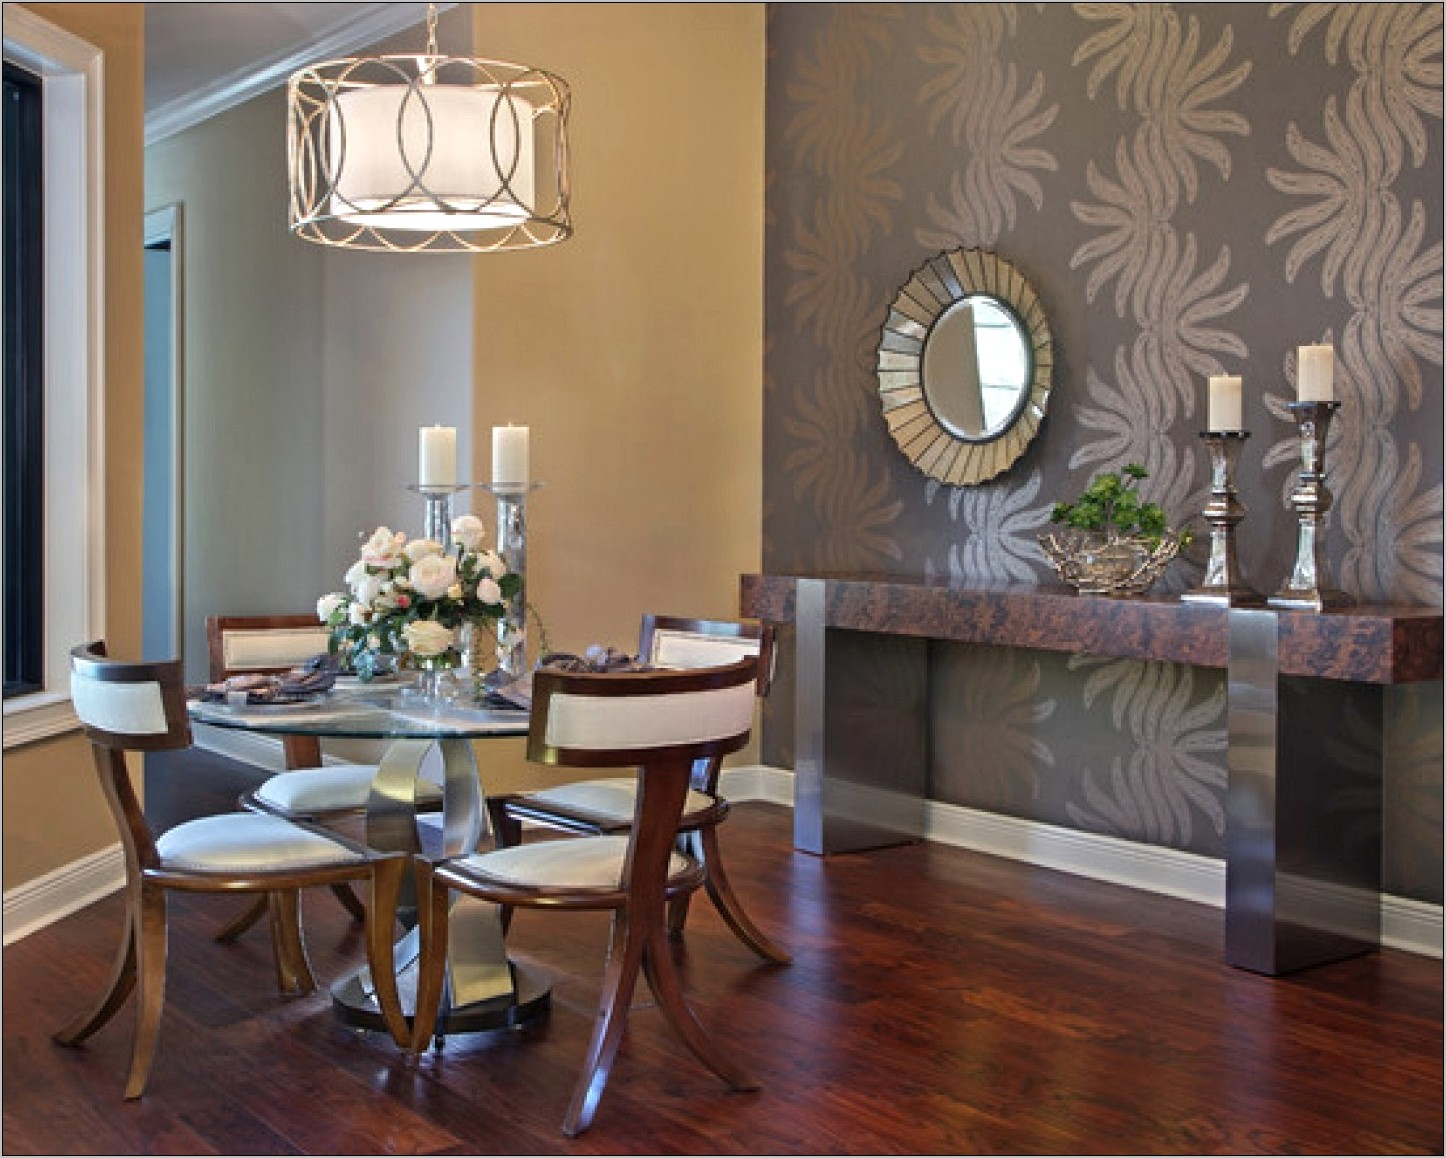 Decorating Dining Room With Round Table